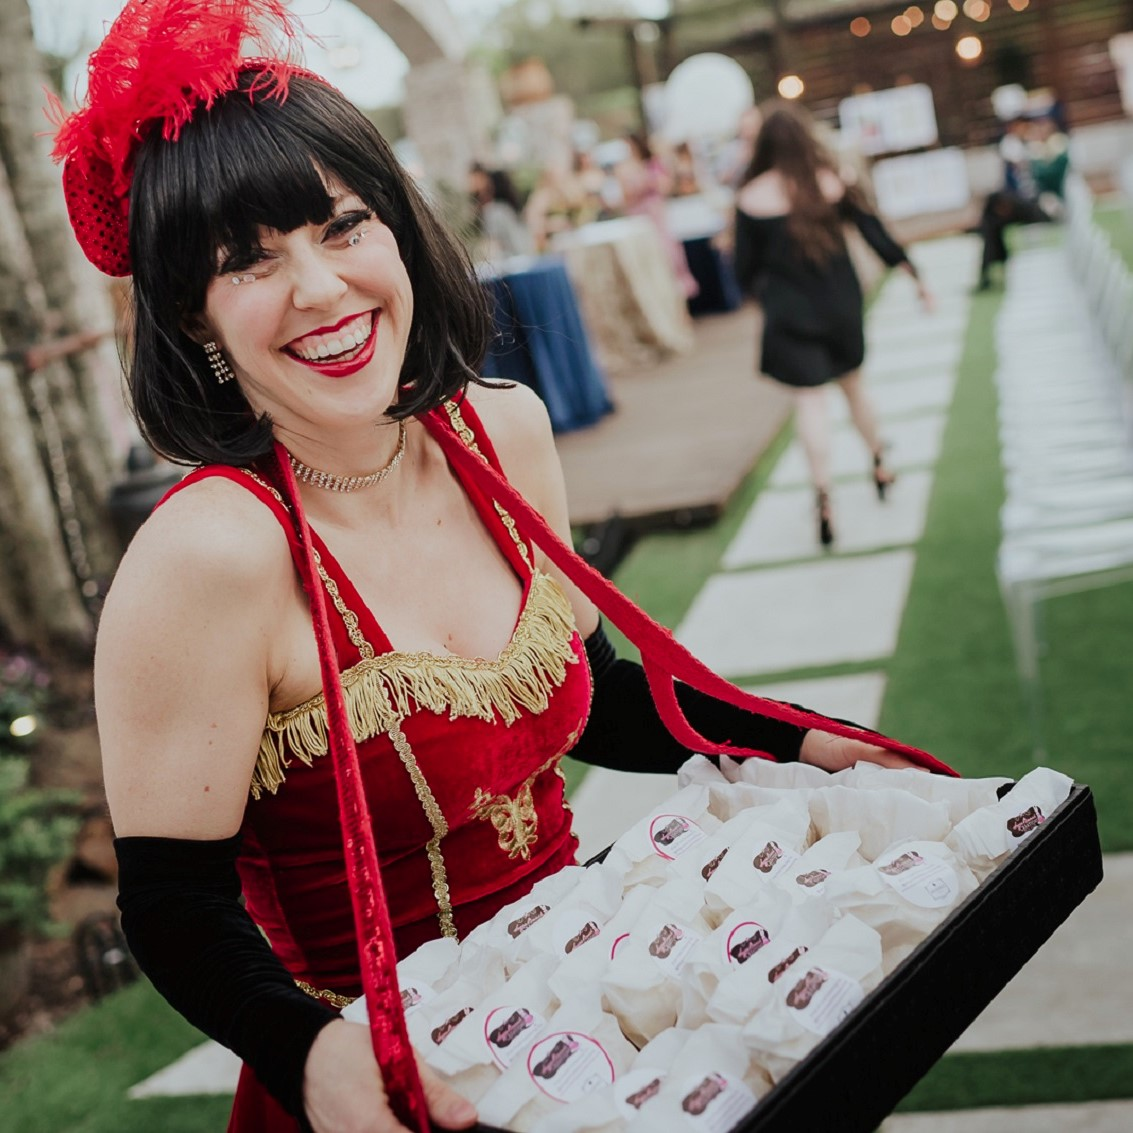 Cigarette girl handing out sweet carvial treats.